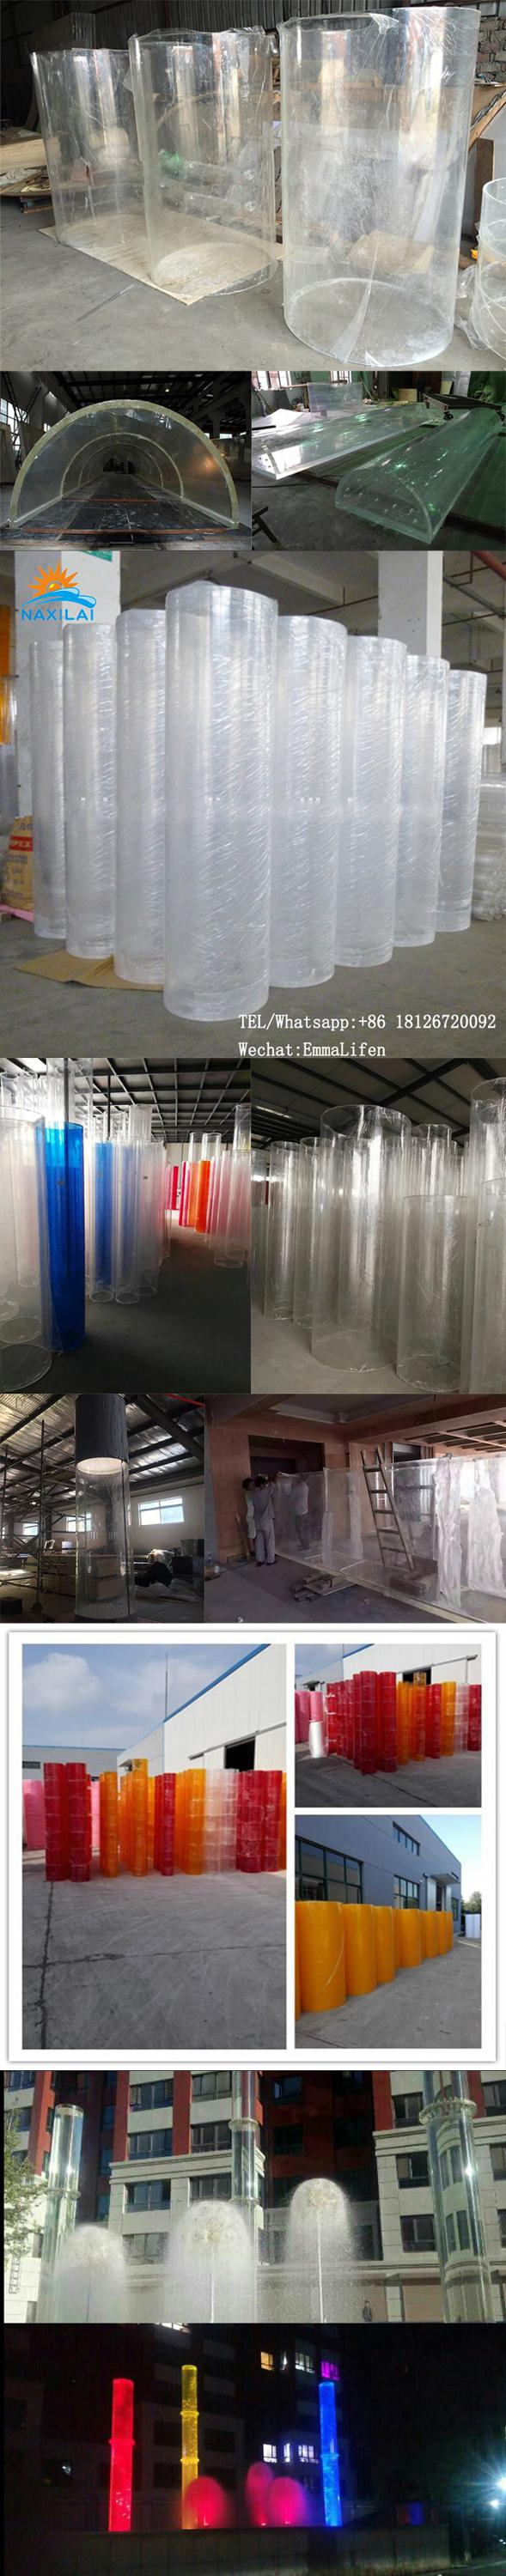 China Transparent Plastic Pipe.jpg